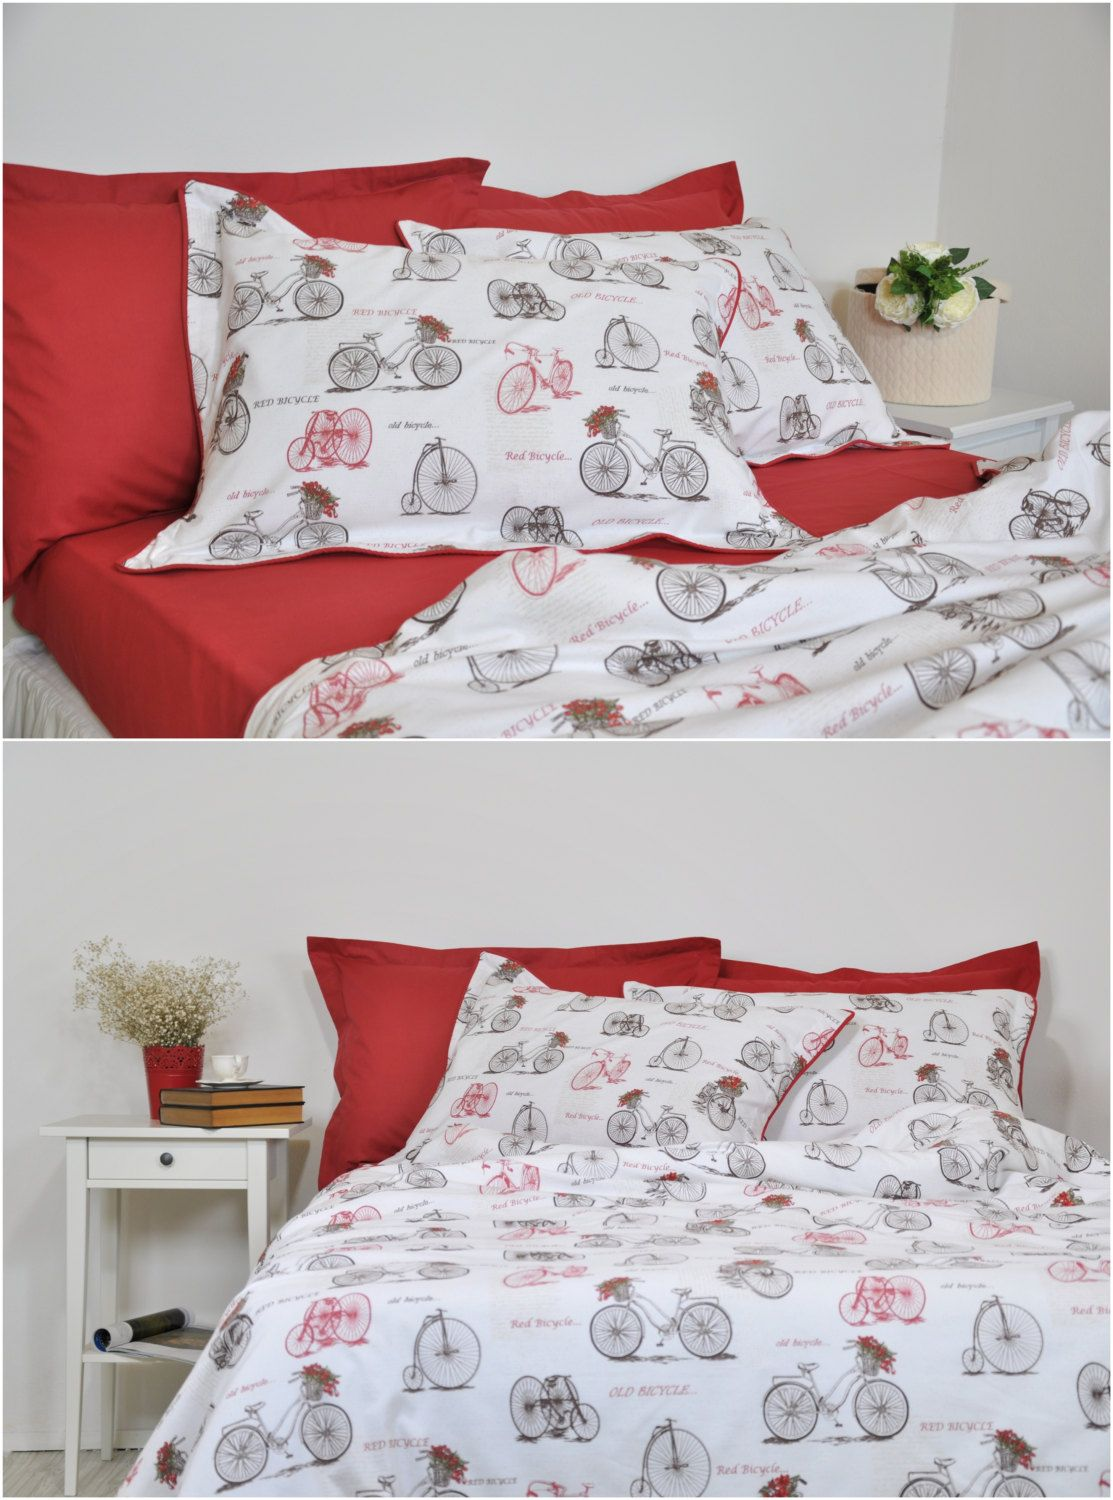 old bicycle duvet cover set in full queen king size sepia brown burgundy red white vintage bike print bedding duvet cover u0026 pillowcases